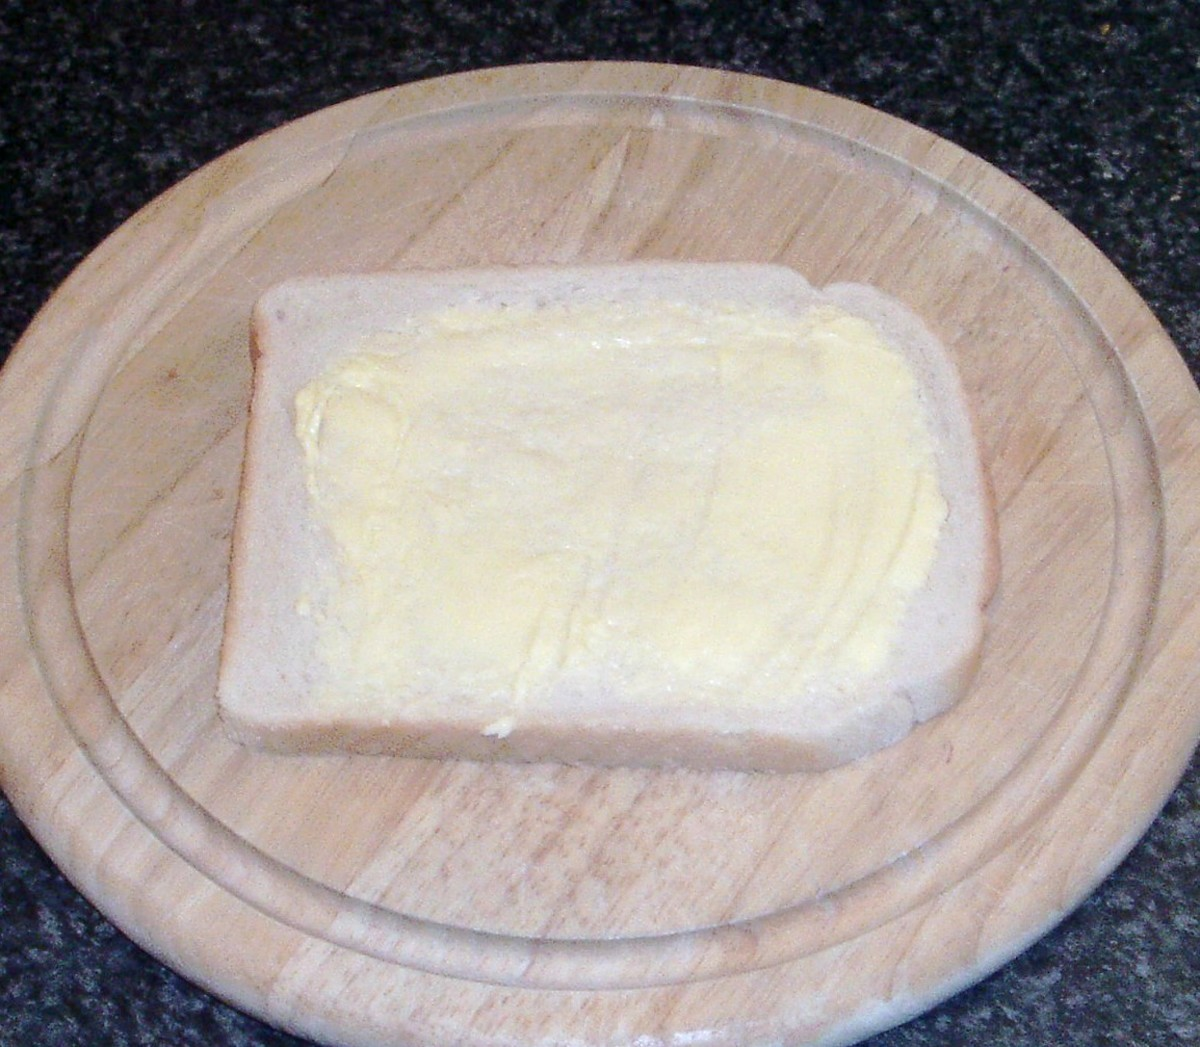 Butter is spread on bread